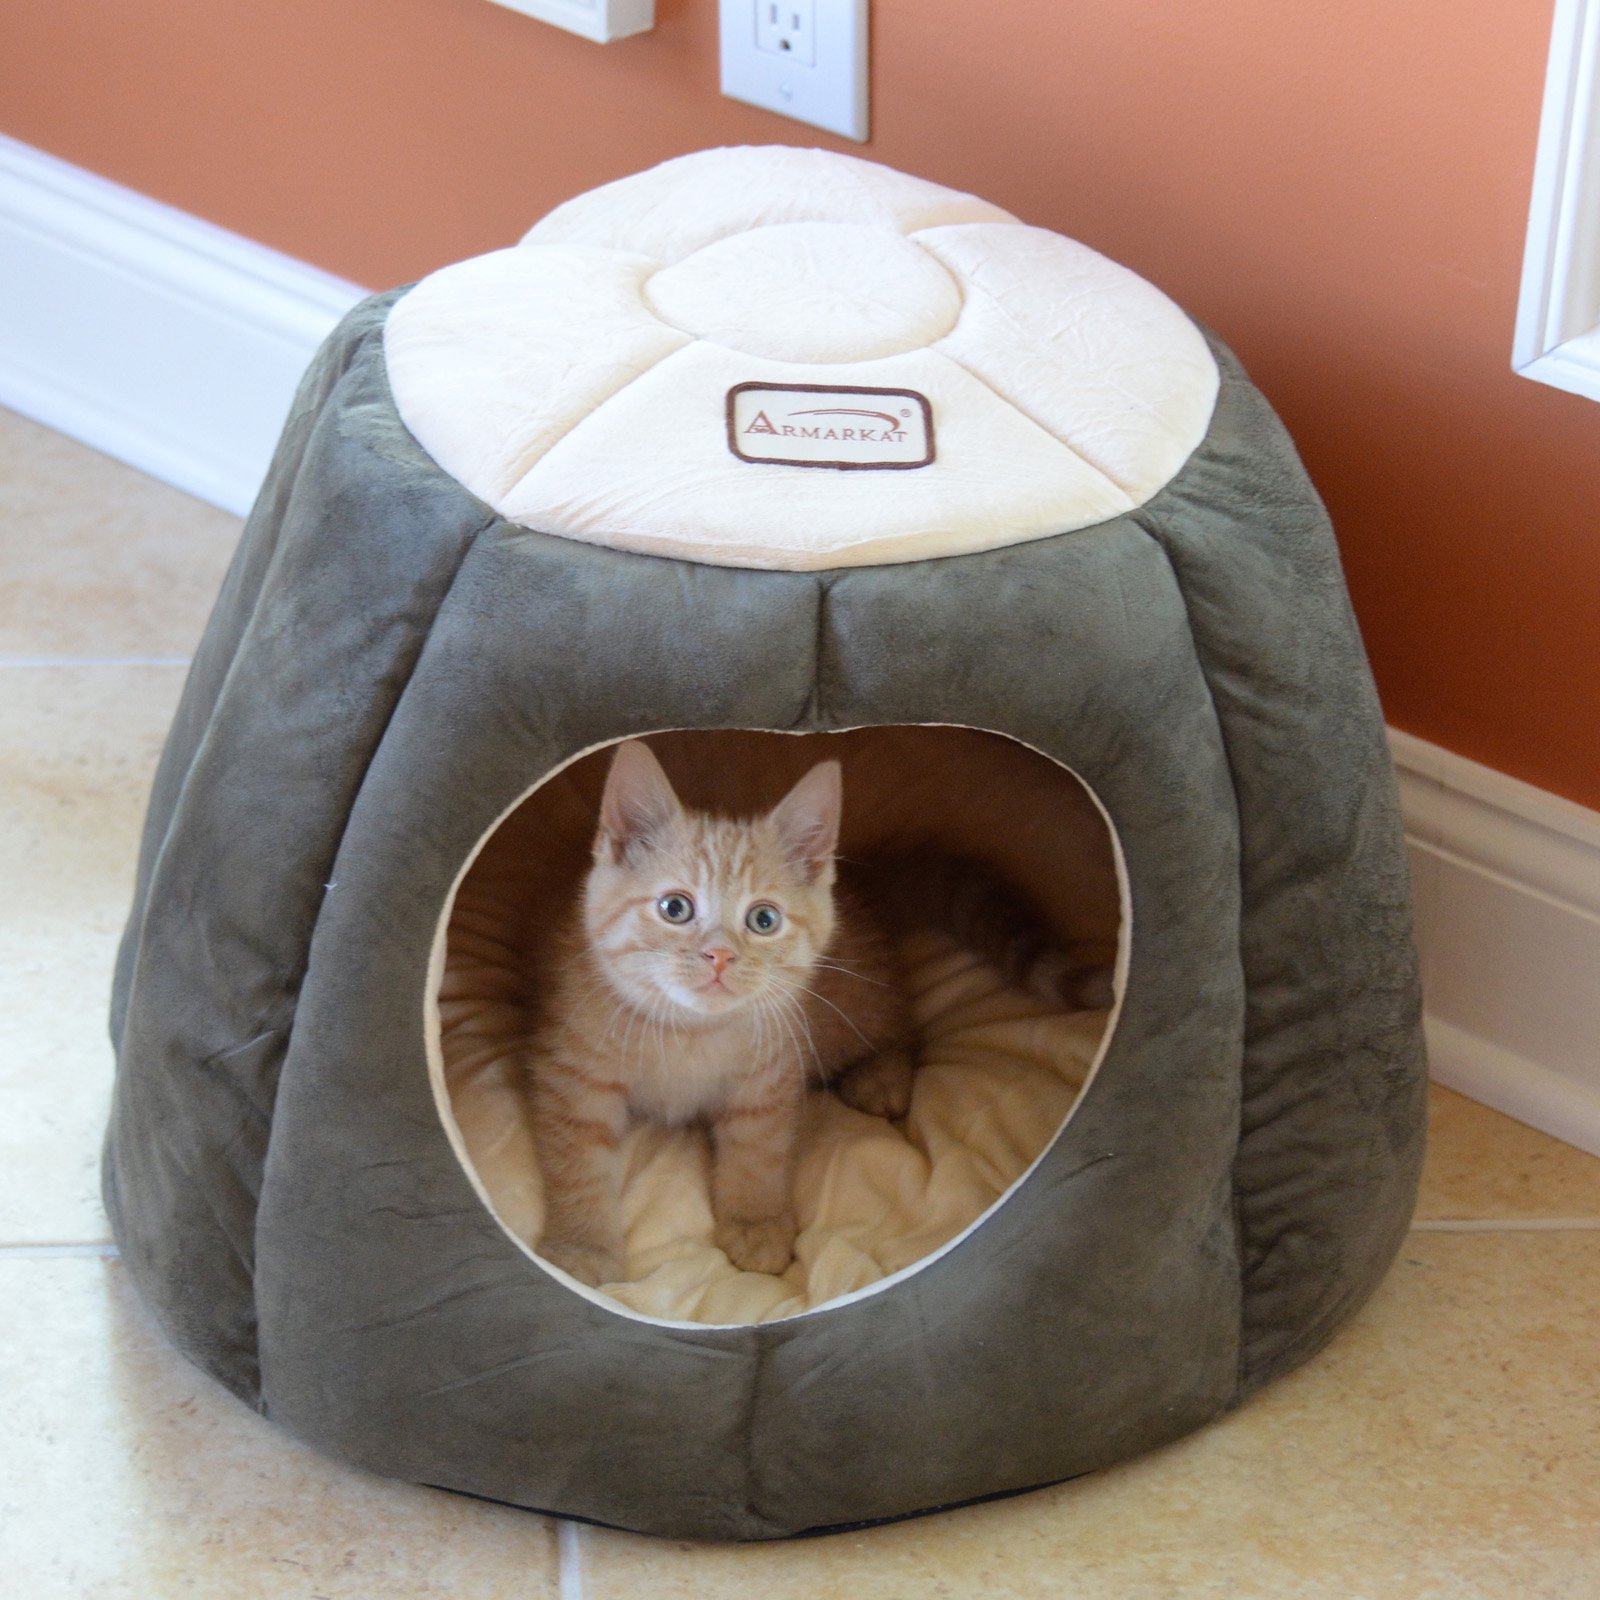 Armarkat Cat Bed, Laurel Green and Beige, C30HML/MH